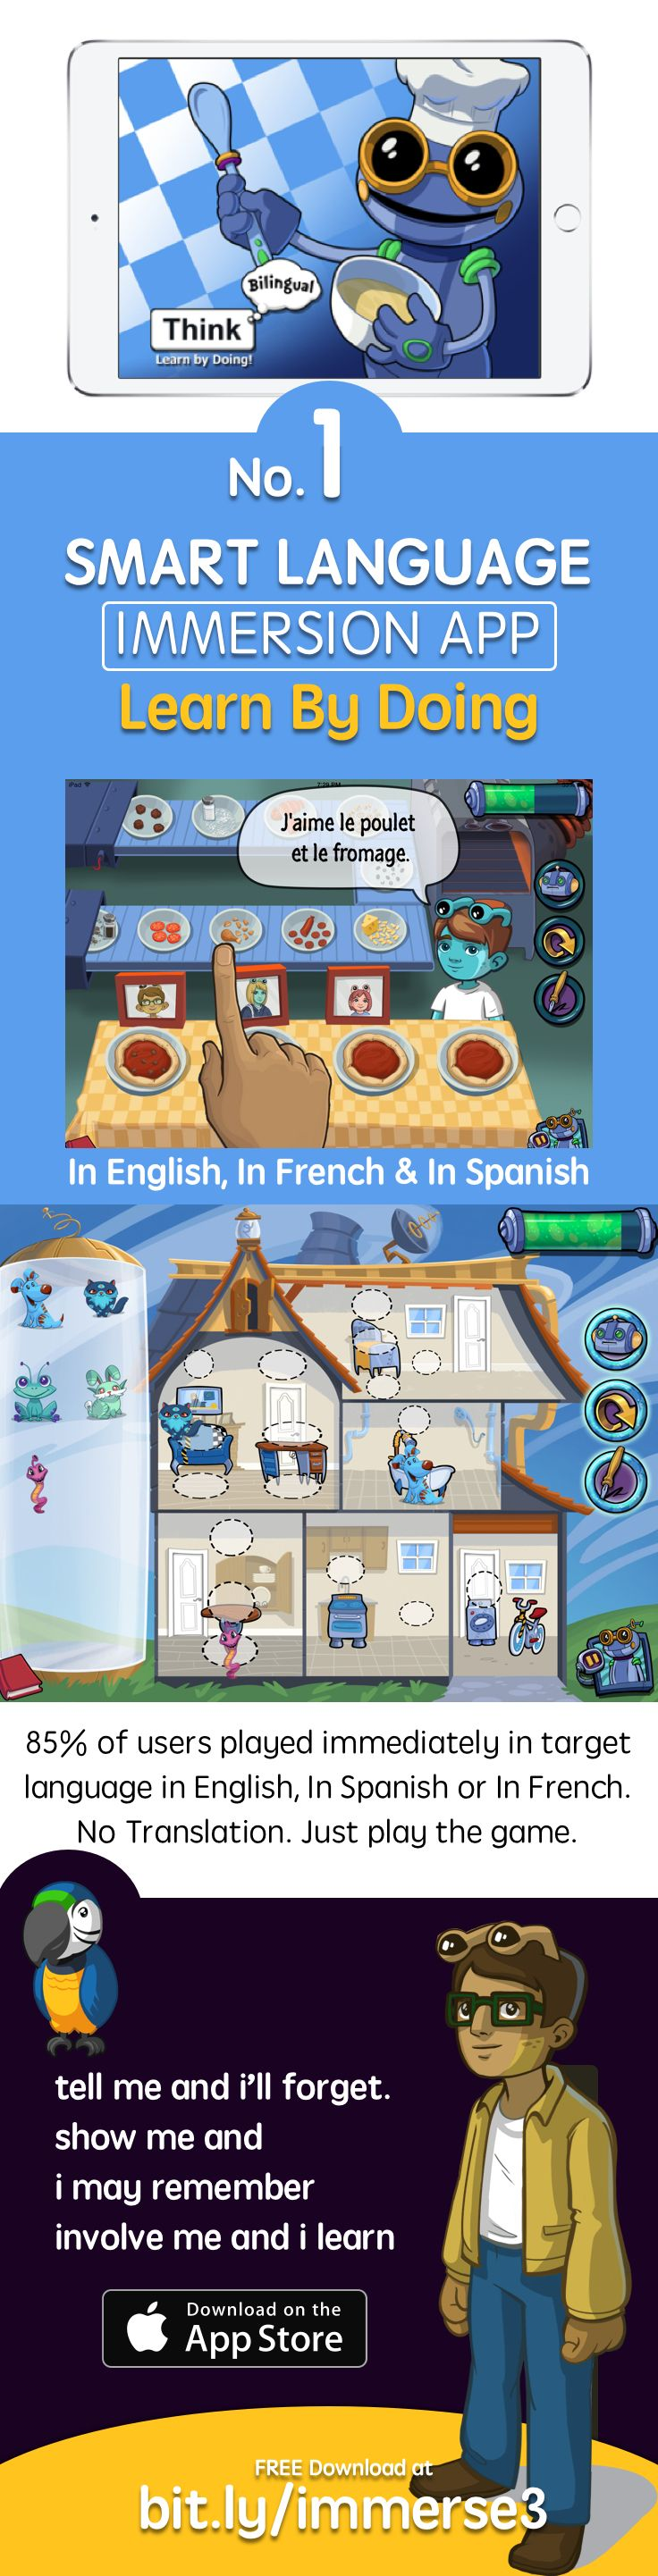 The Best Apps for Learning French - Brainscape Blog